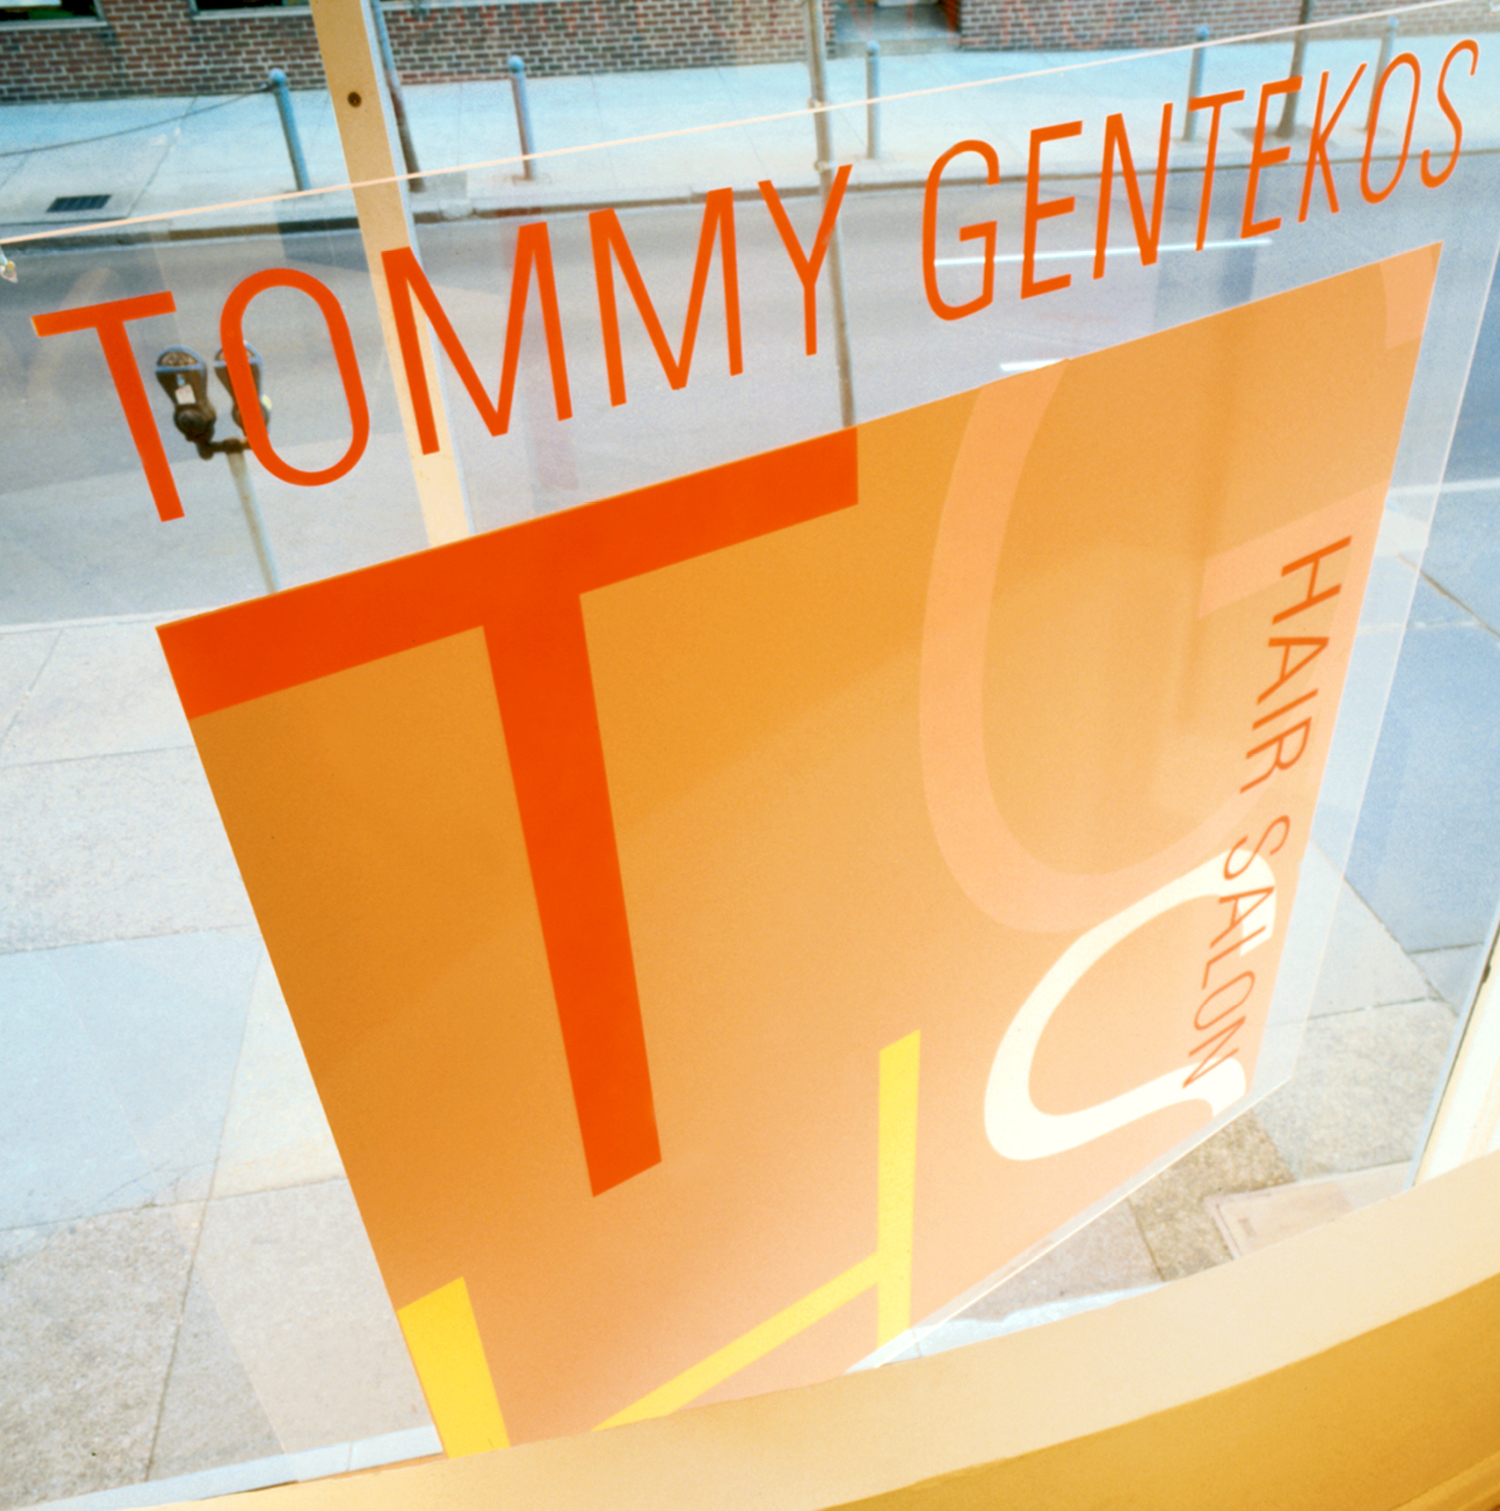 Tommy Gentekos Hair Salon